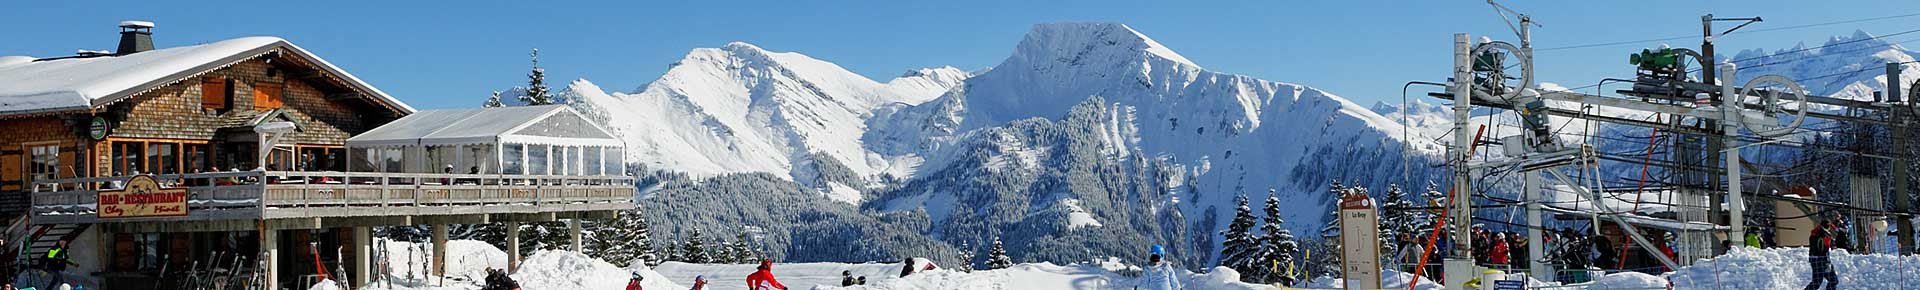 Domaine skiable St Jean d'Aulps Roc d'Enfer